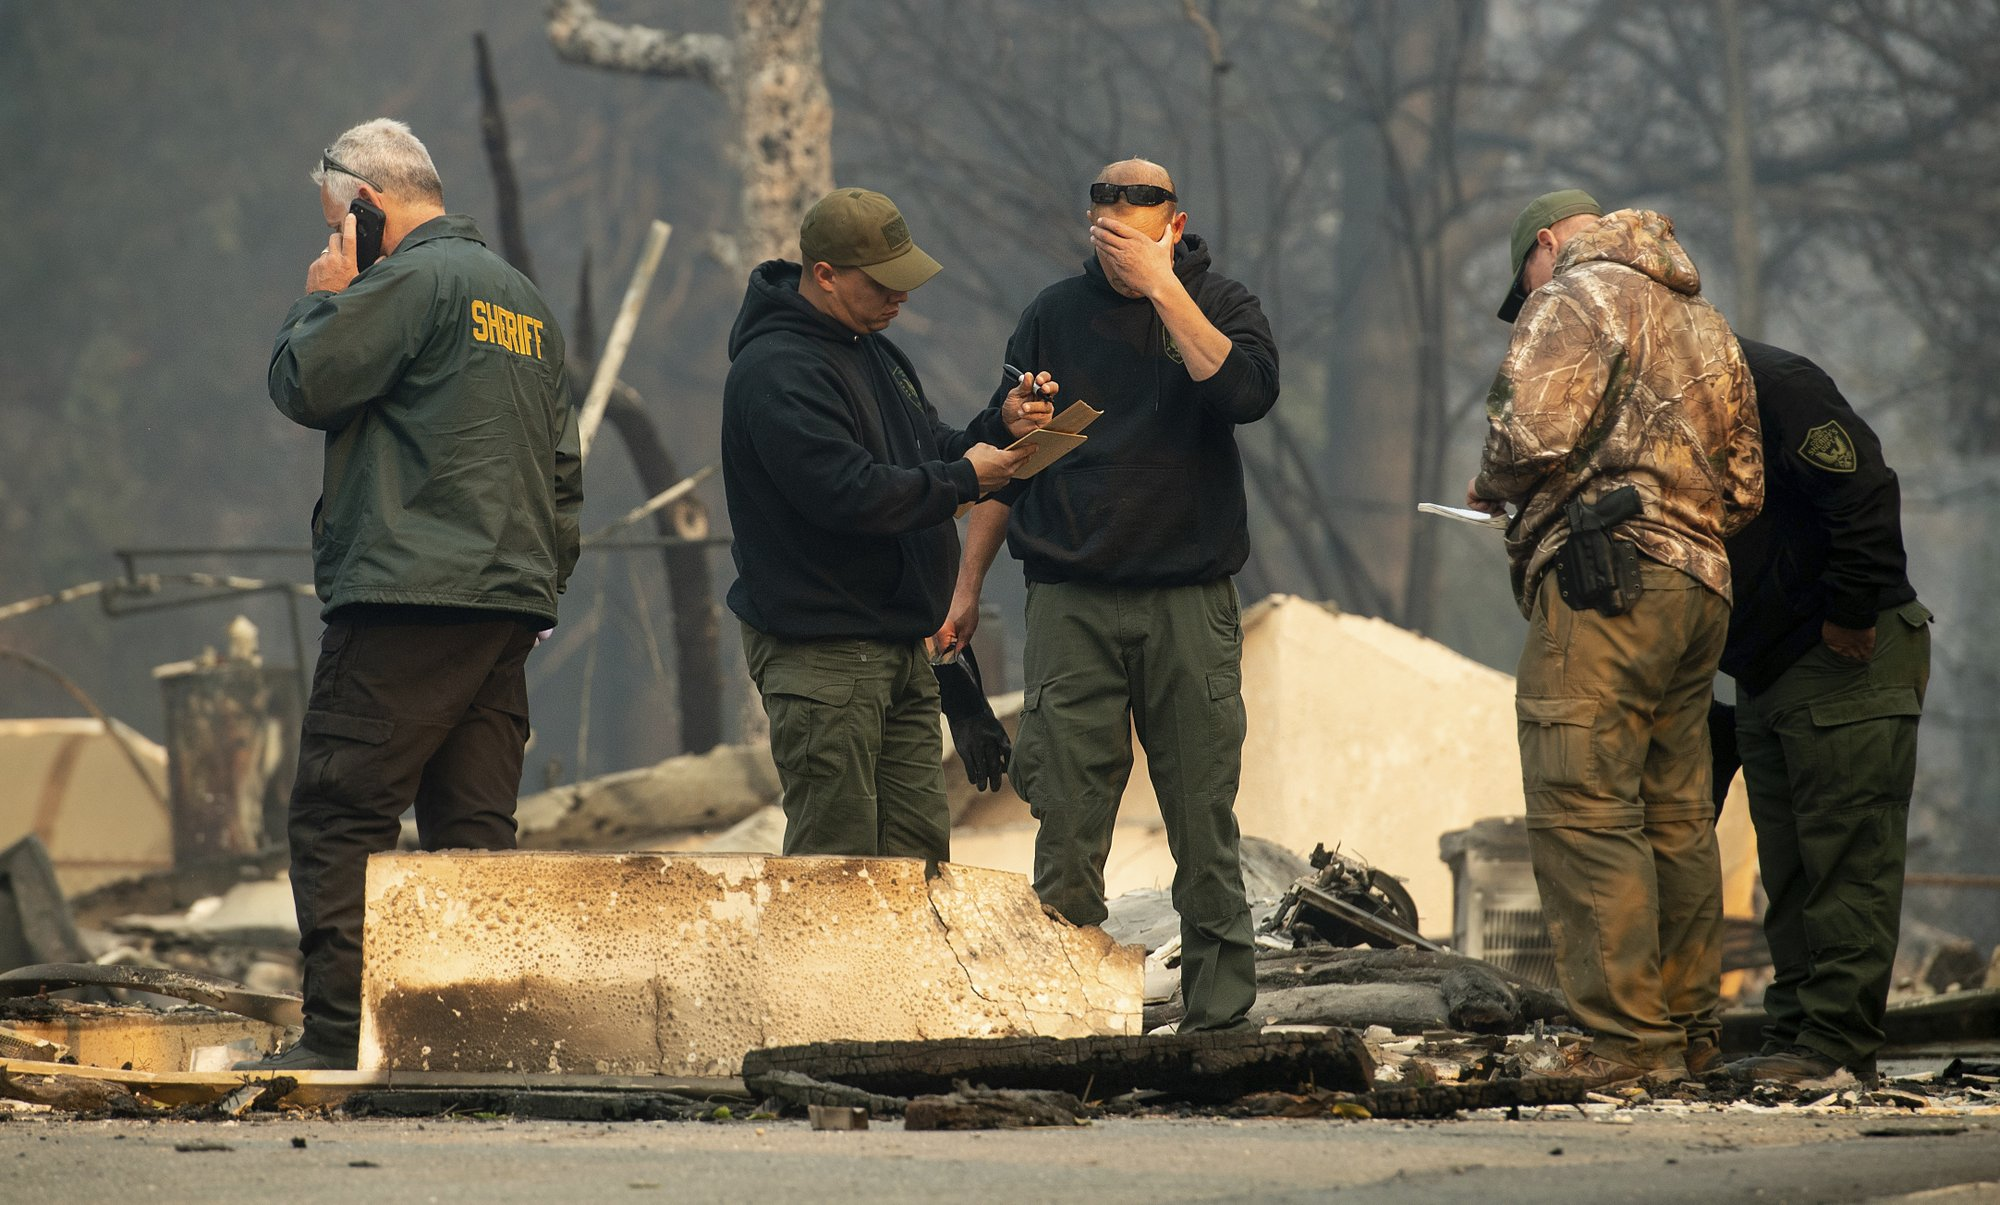 Death toll in California wildfires climbs to 25 | KVOA com